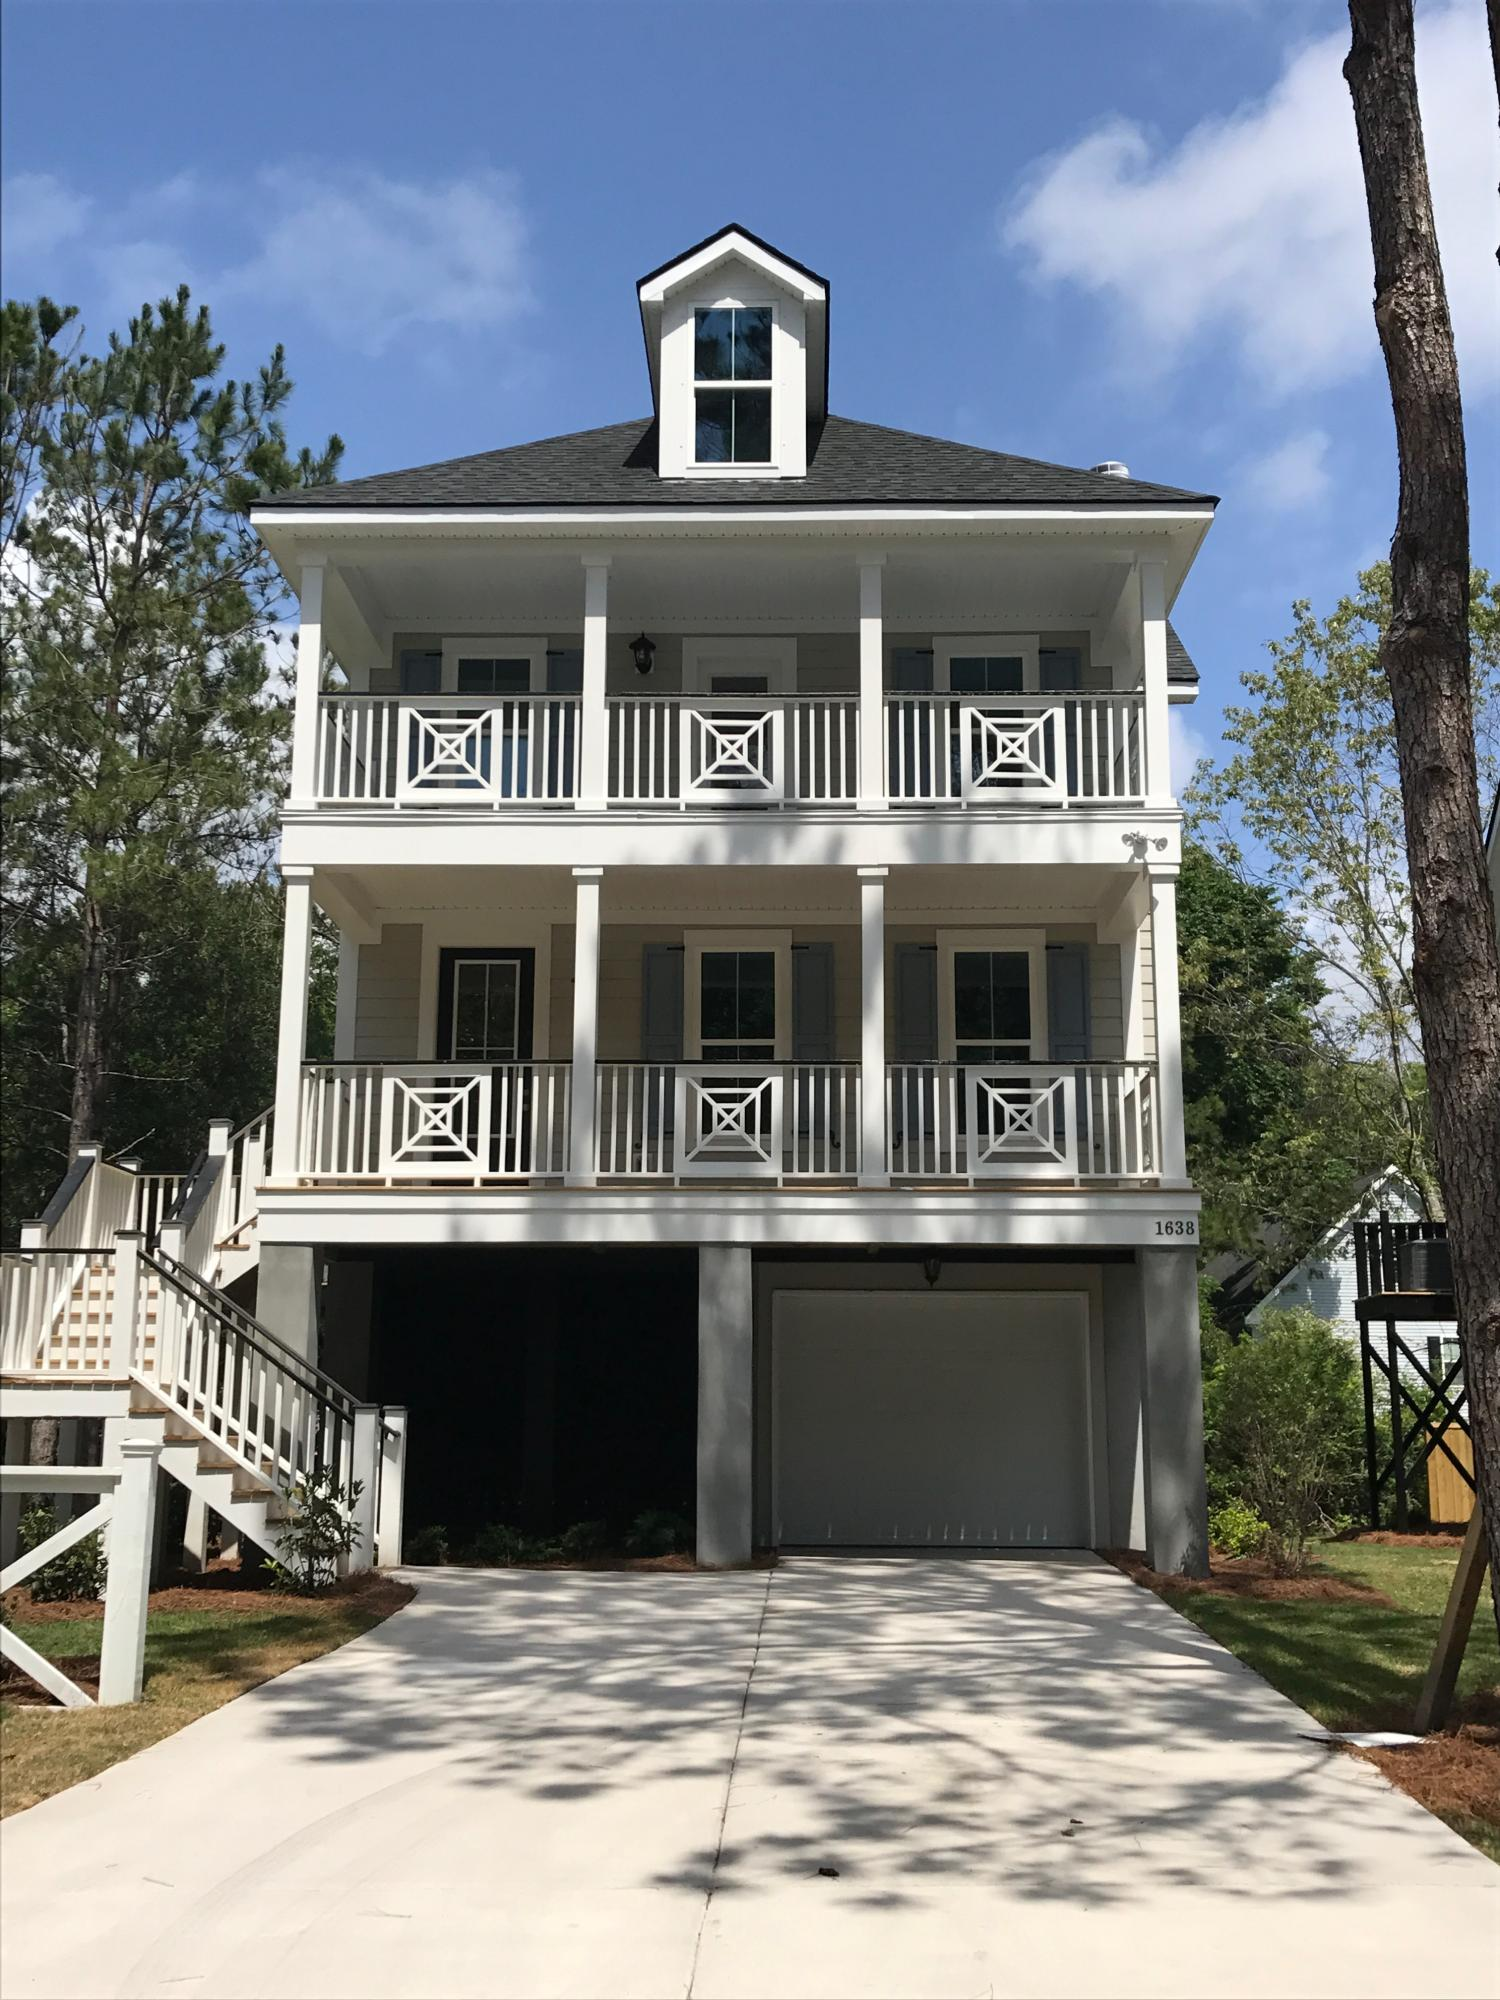 Home for sale 1638 Periwinkle Drive , Cottages On Periwinkle, Mt. Pleasant, SC